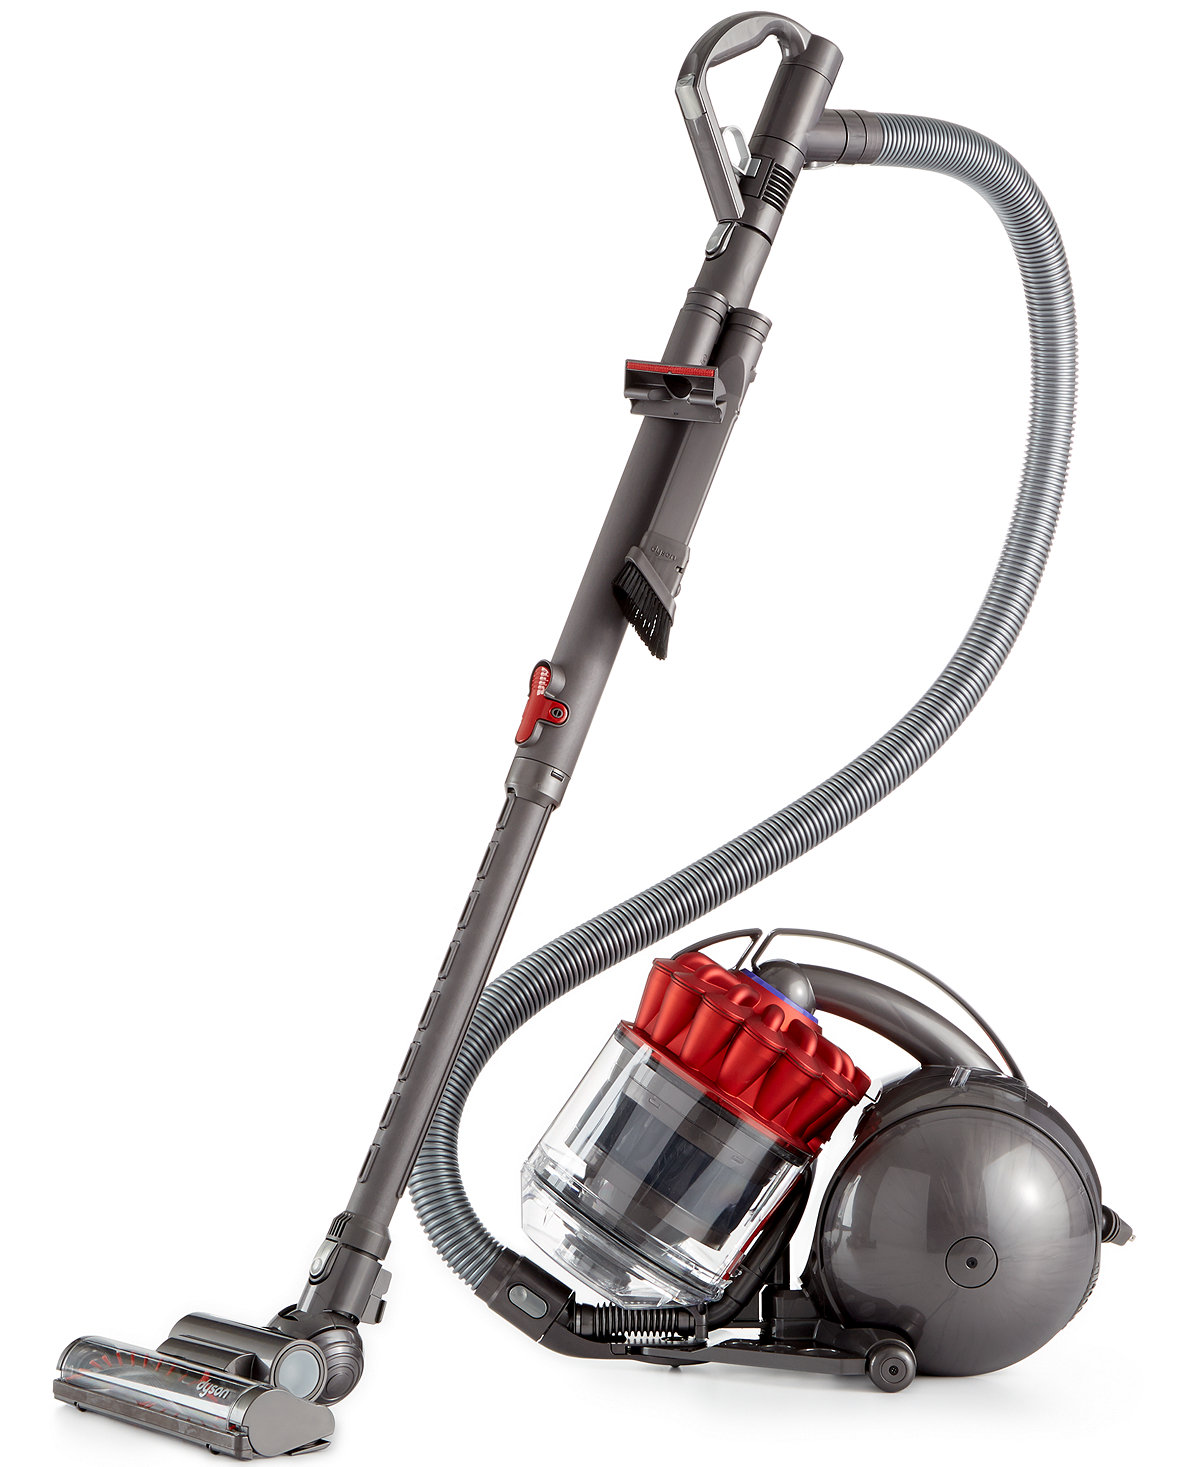 48% off Dyson DC39 Ball Multifloor Pro Canister Vacuum